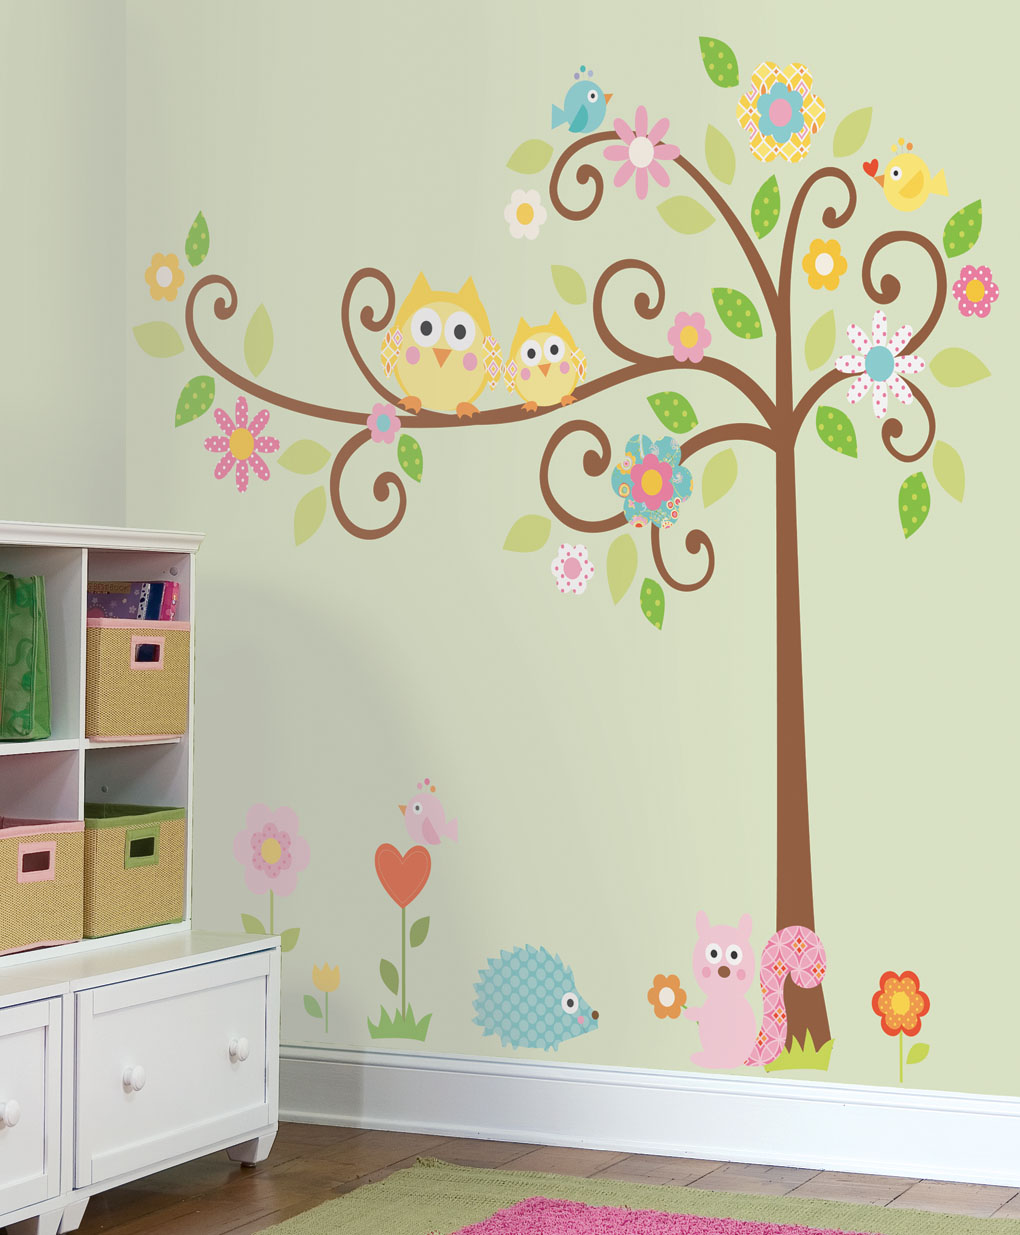 Wall decals kids art wall decor Kids room wall painting design